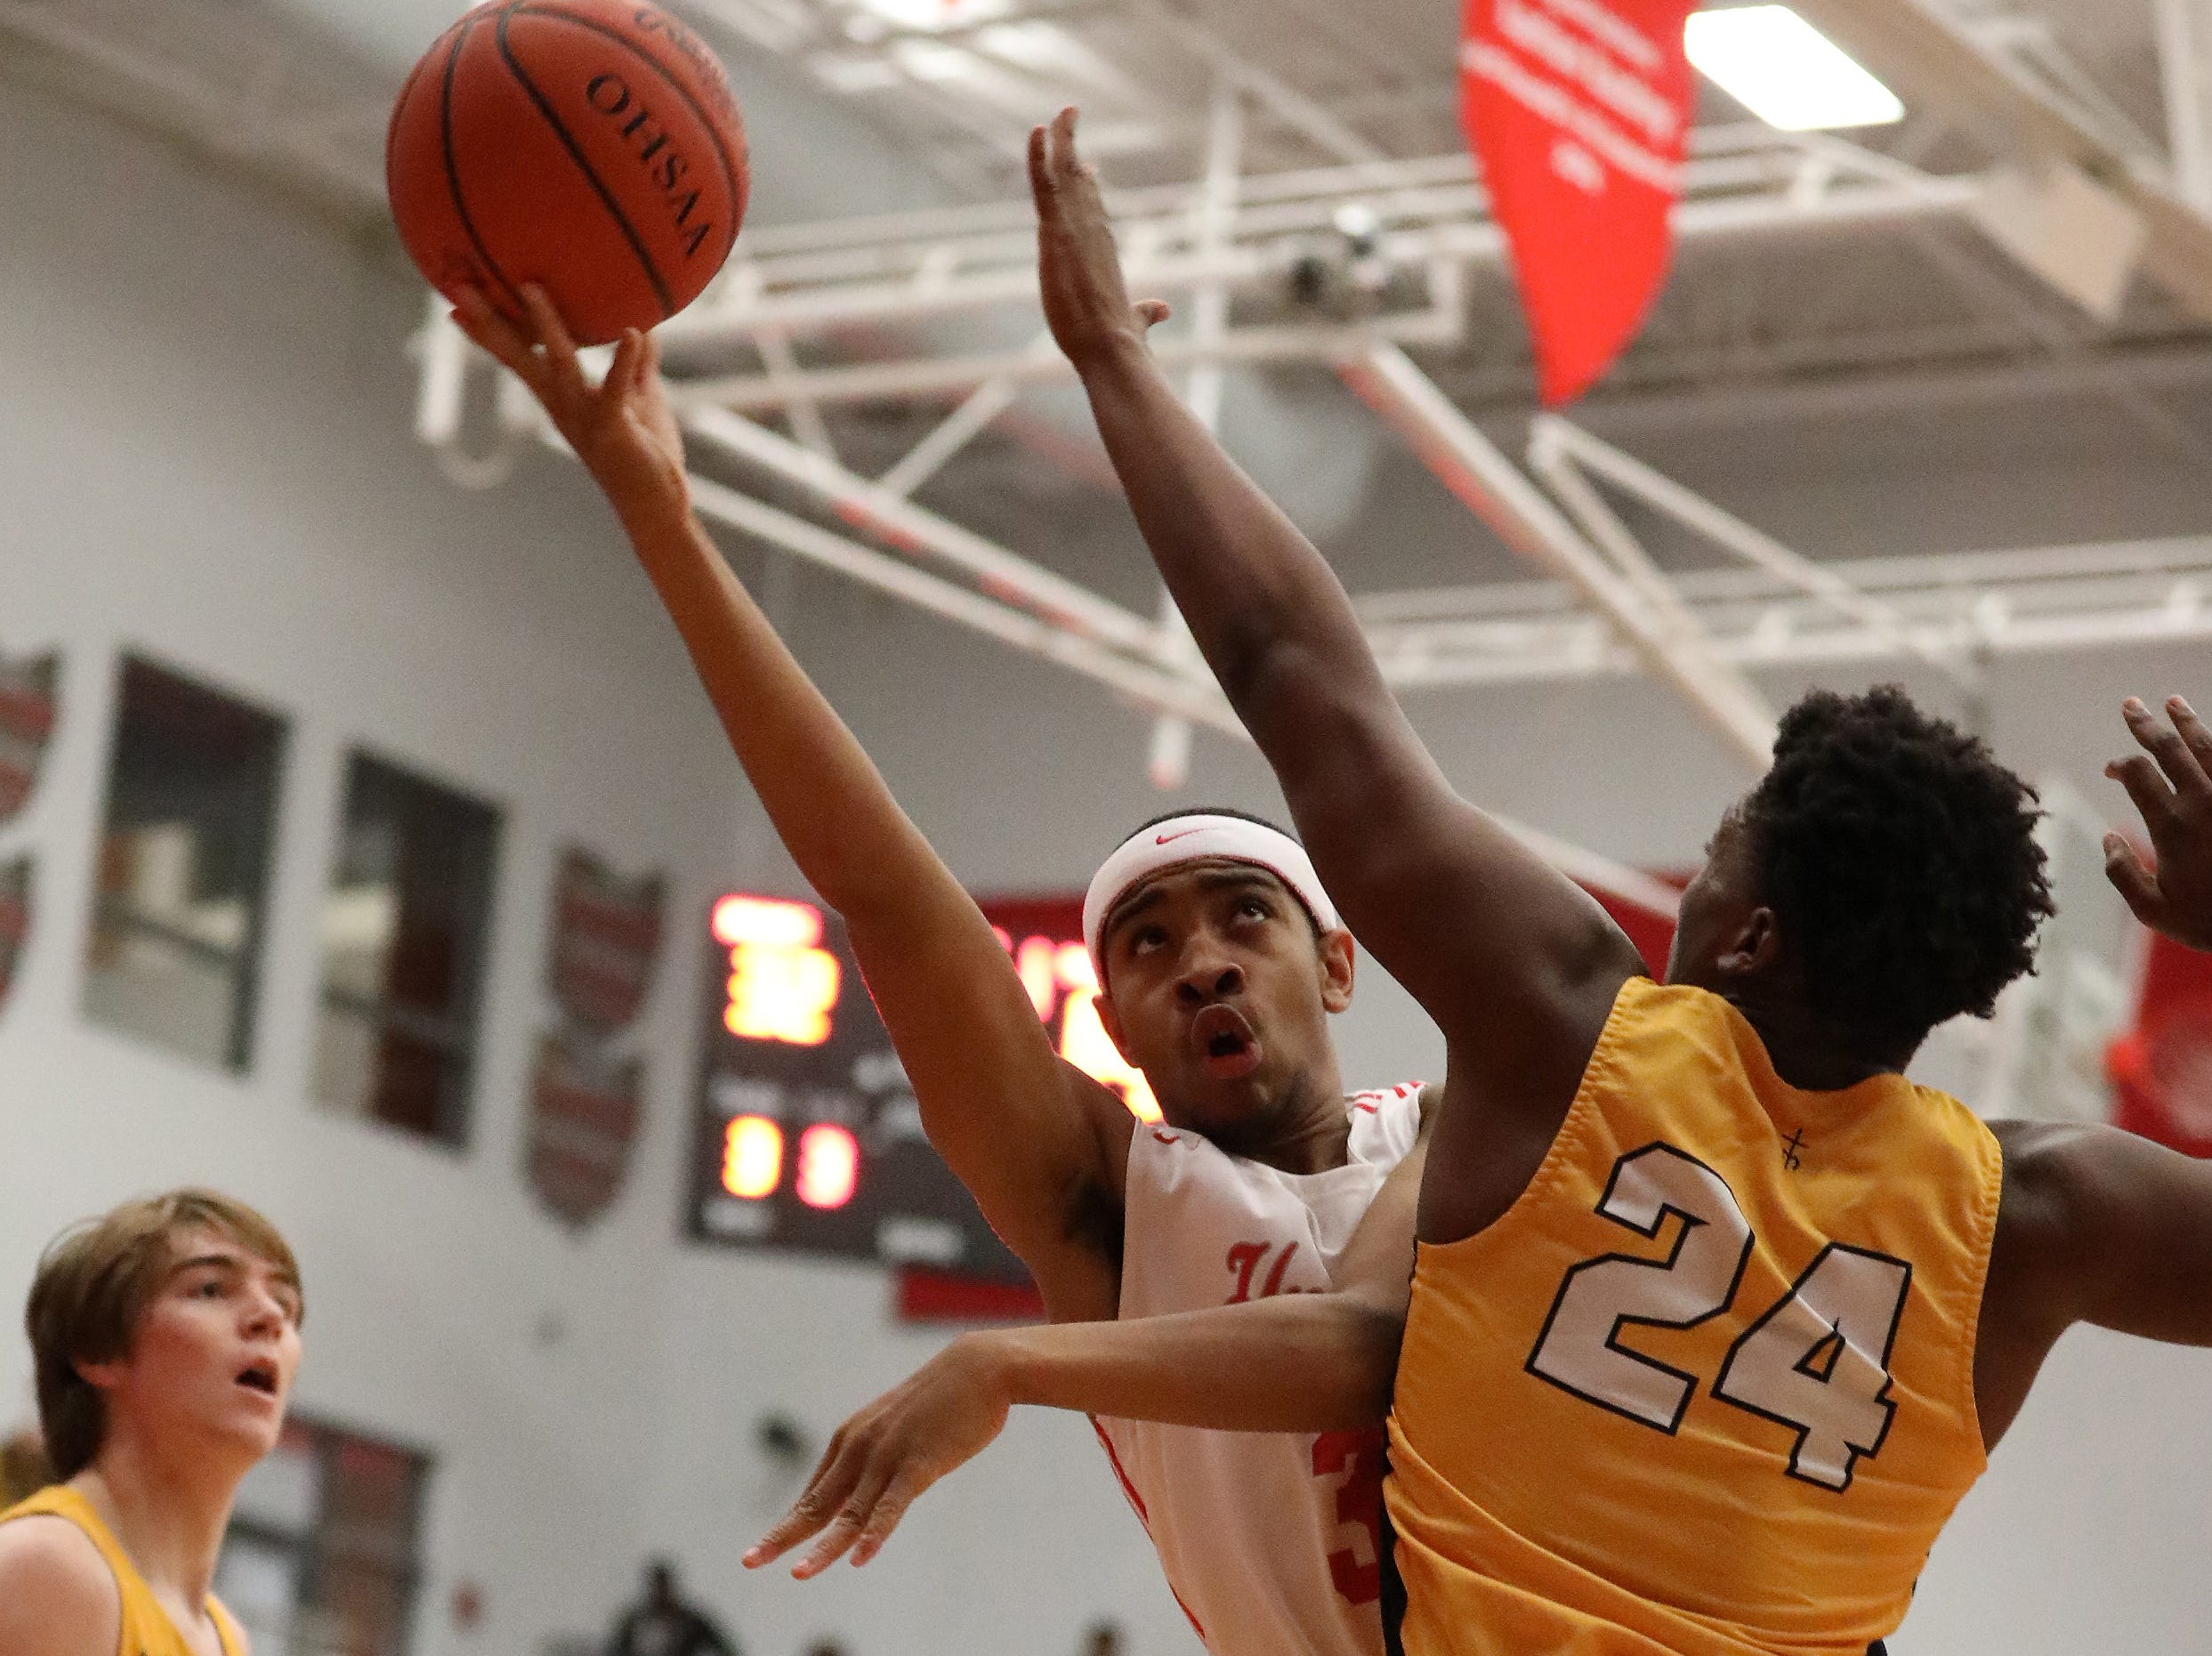 Hughes' Tyon Thompson drives to the basket during their basketball game against Moeller, Friday, Dec. 7, 2018.